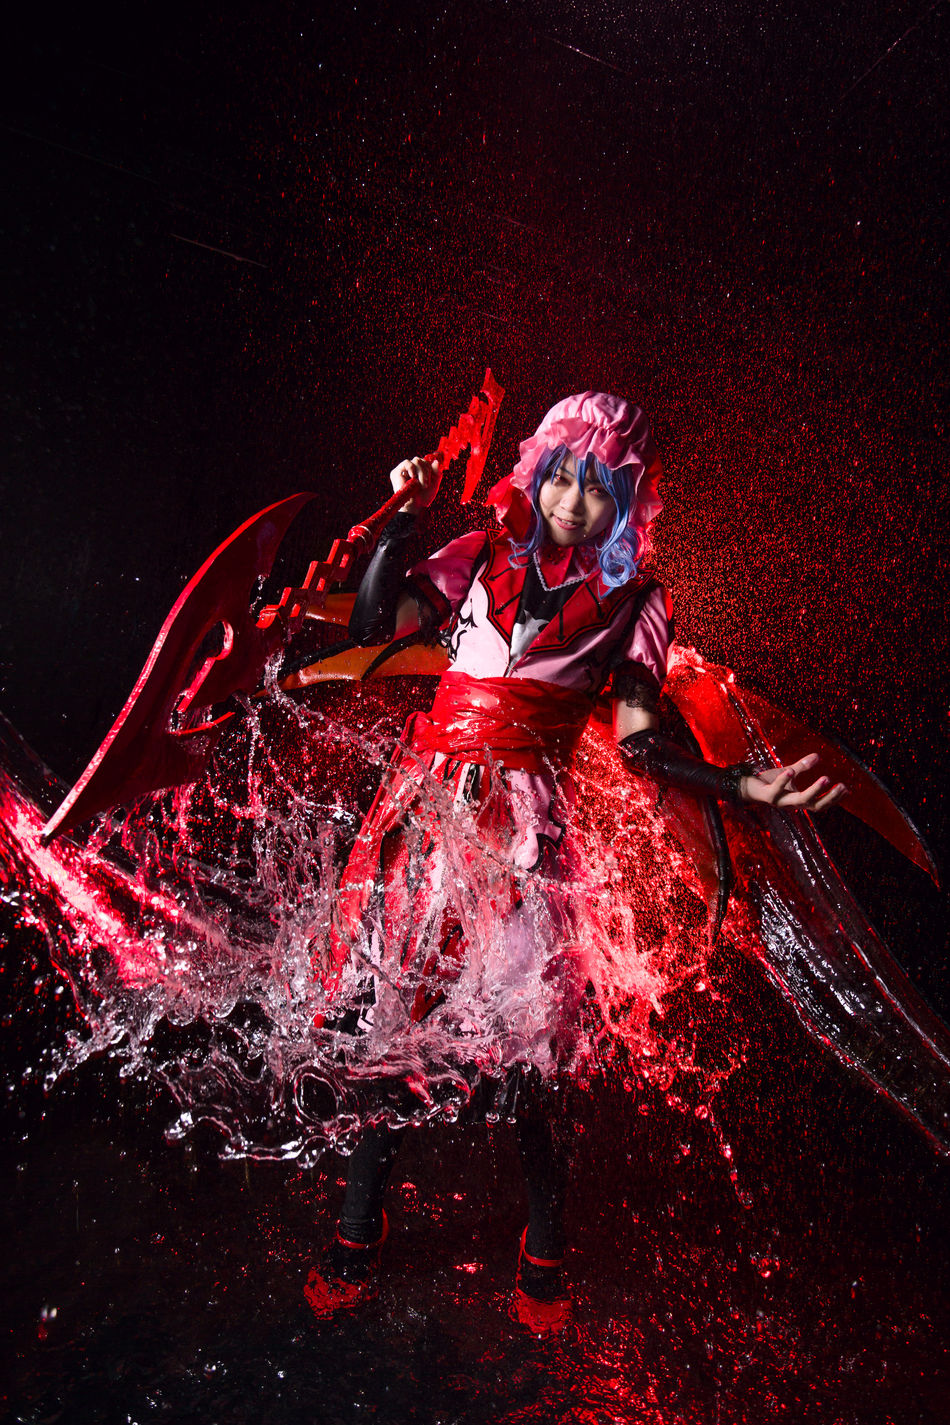 Remilia Scarlet (Koumajou ver.) Remilia Scarlet Touhou Project Cosplay Girl Portrait Water Splash Vampire Solo Single People Red Only Women One Person Indoors  Young Adult Game Spear Gungnir Asdgraphy Koumajou Touhouvania Castlevania